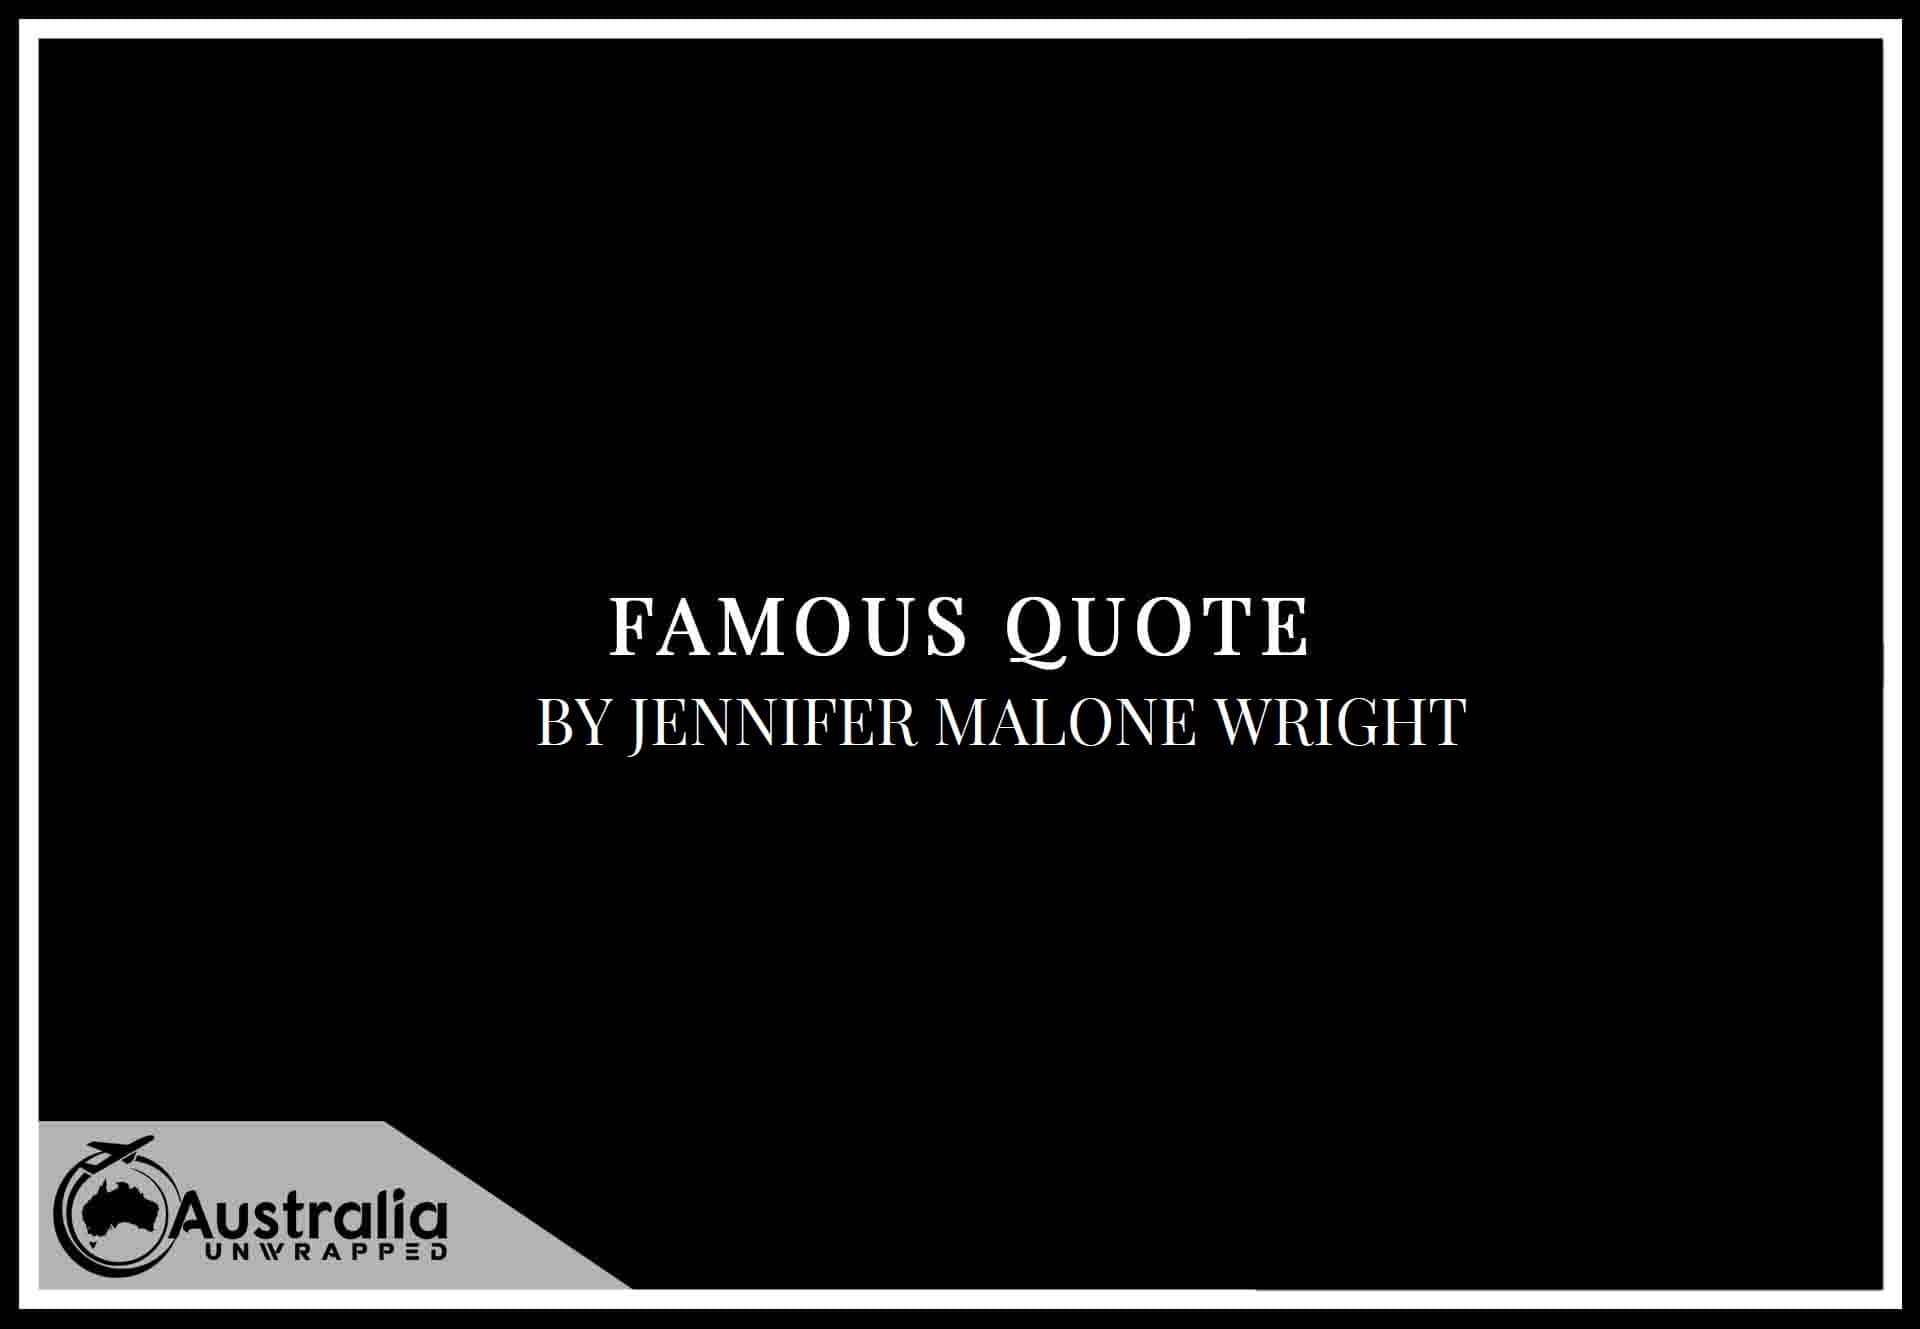 Top 1 Famous Quotes by Author Jennifer Malone Wright